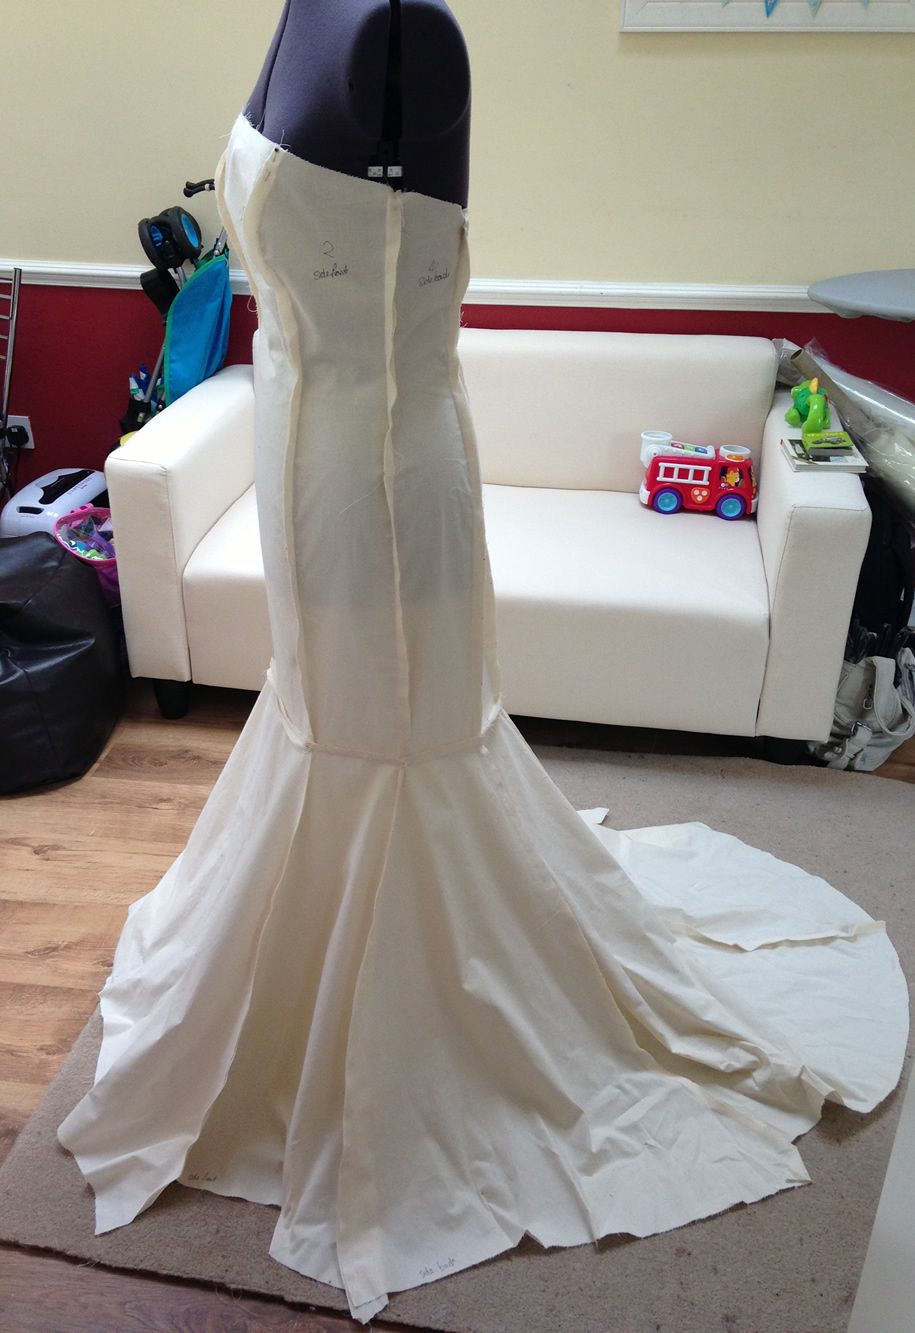 78  images about Making Wedding Dress on Pinterest  Skirts ...